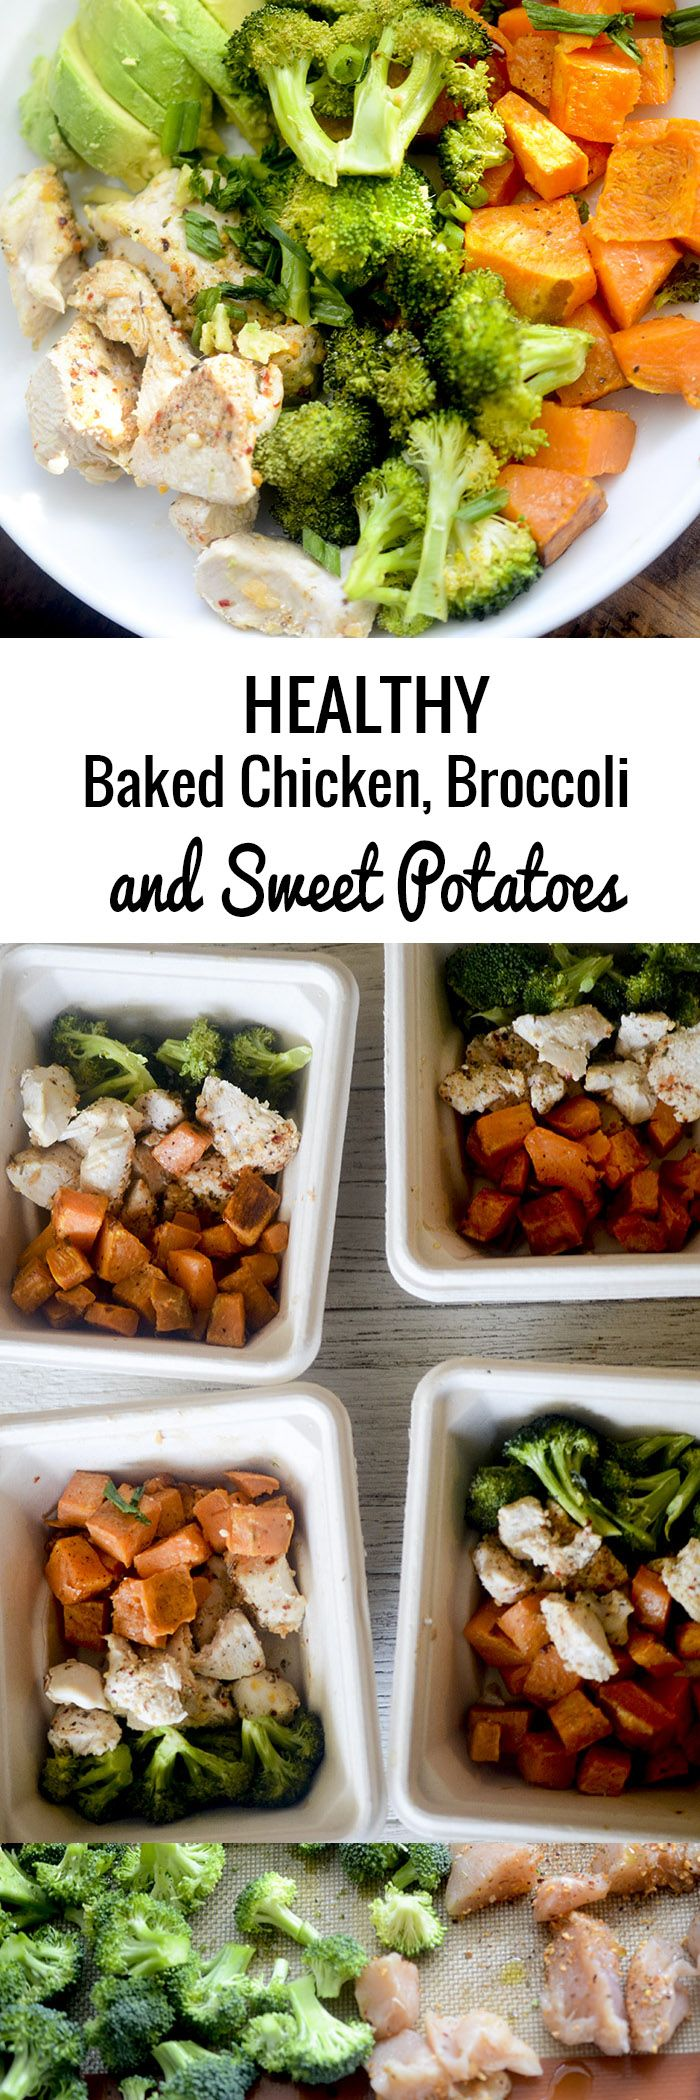 Healthy Baked Chicken Broccoli And Sweet Potatoes Recipe Diaries Healthy Mealprep Healthy Baked Chicken Healthy Baking Healthy